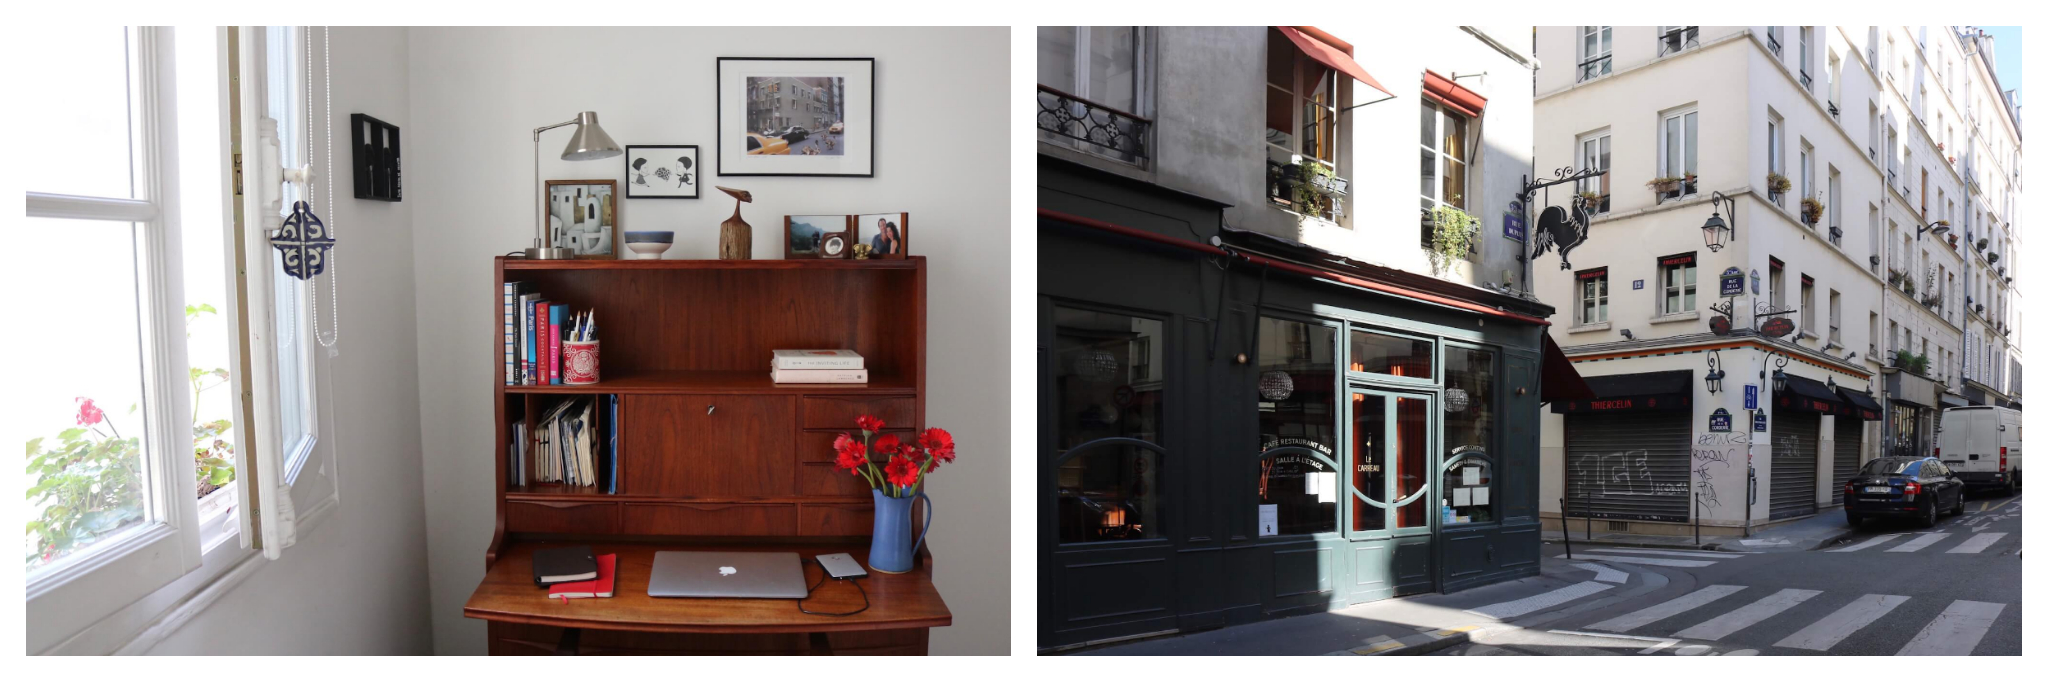 Left: Kasia's desk, filled with books, flowers and a laptop, where she has been working from home during the lockdown. Right: An empty street in Paris lined with non-essential businesses which have temporarily closed during the lockdown.